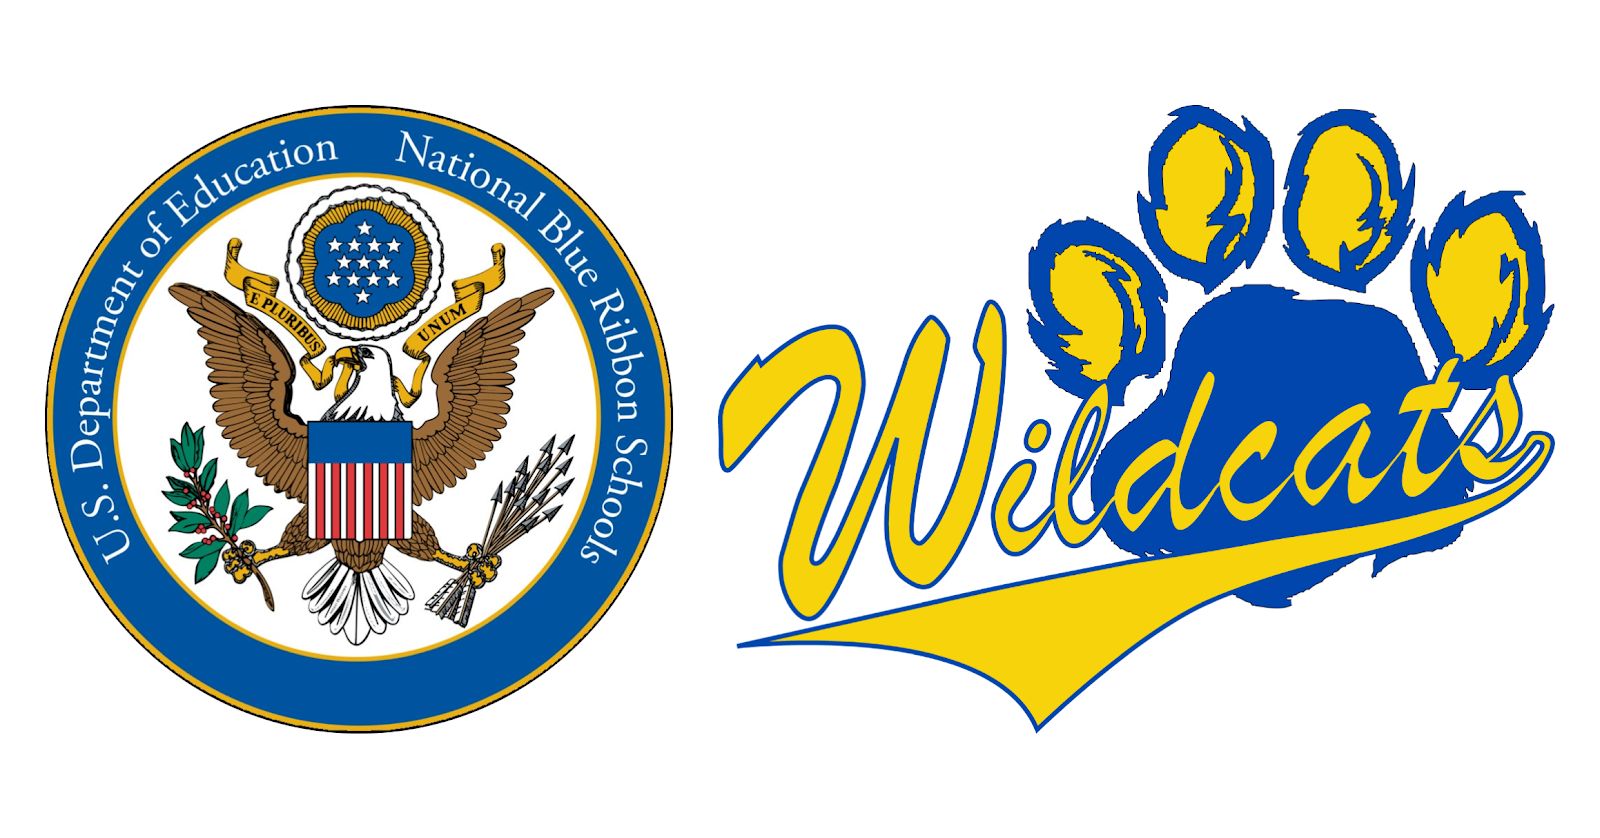 U.S. Secretary of Education Announces Johnson Elementary as a 2020 National Blue Ribbon School